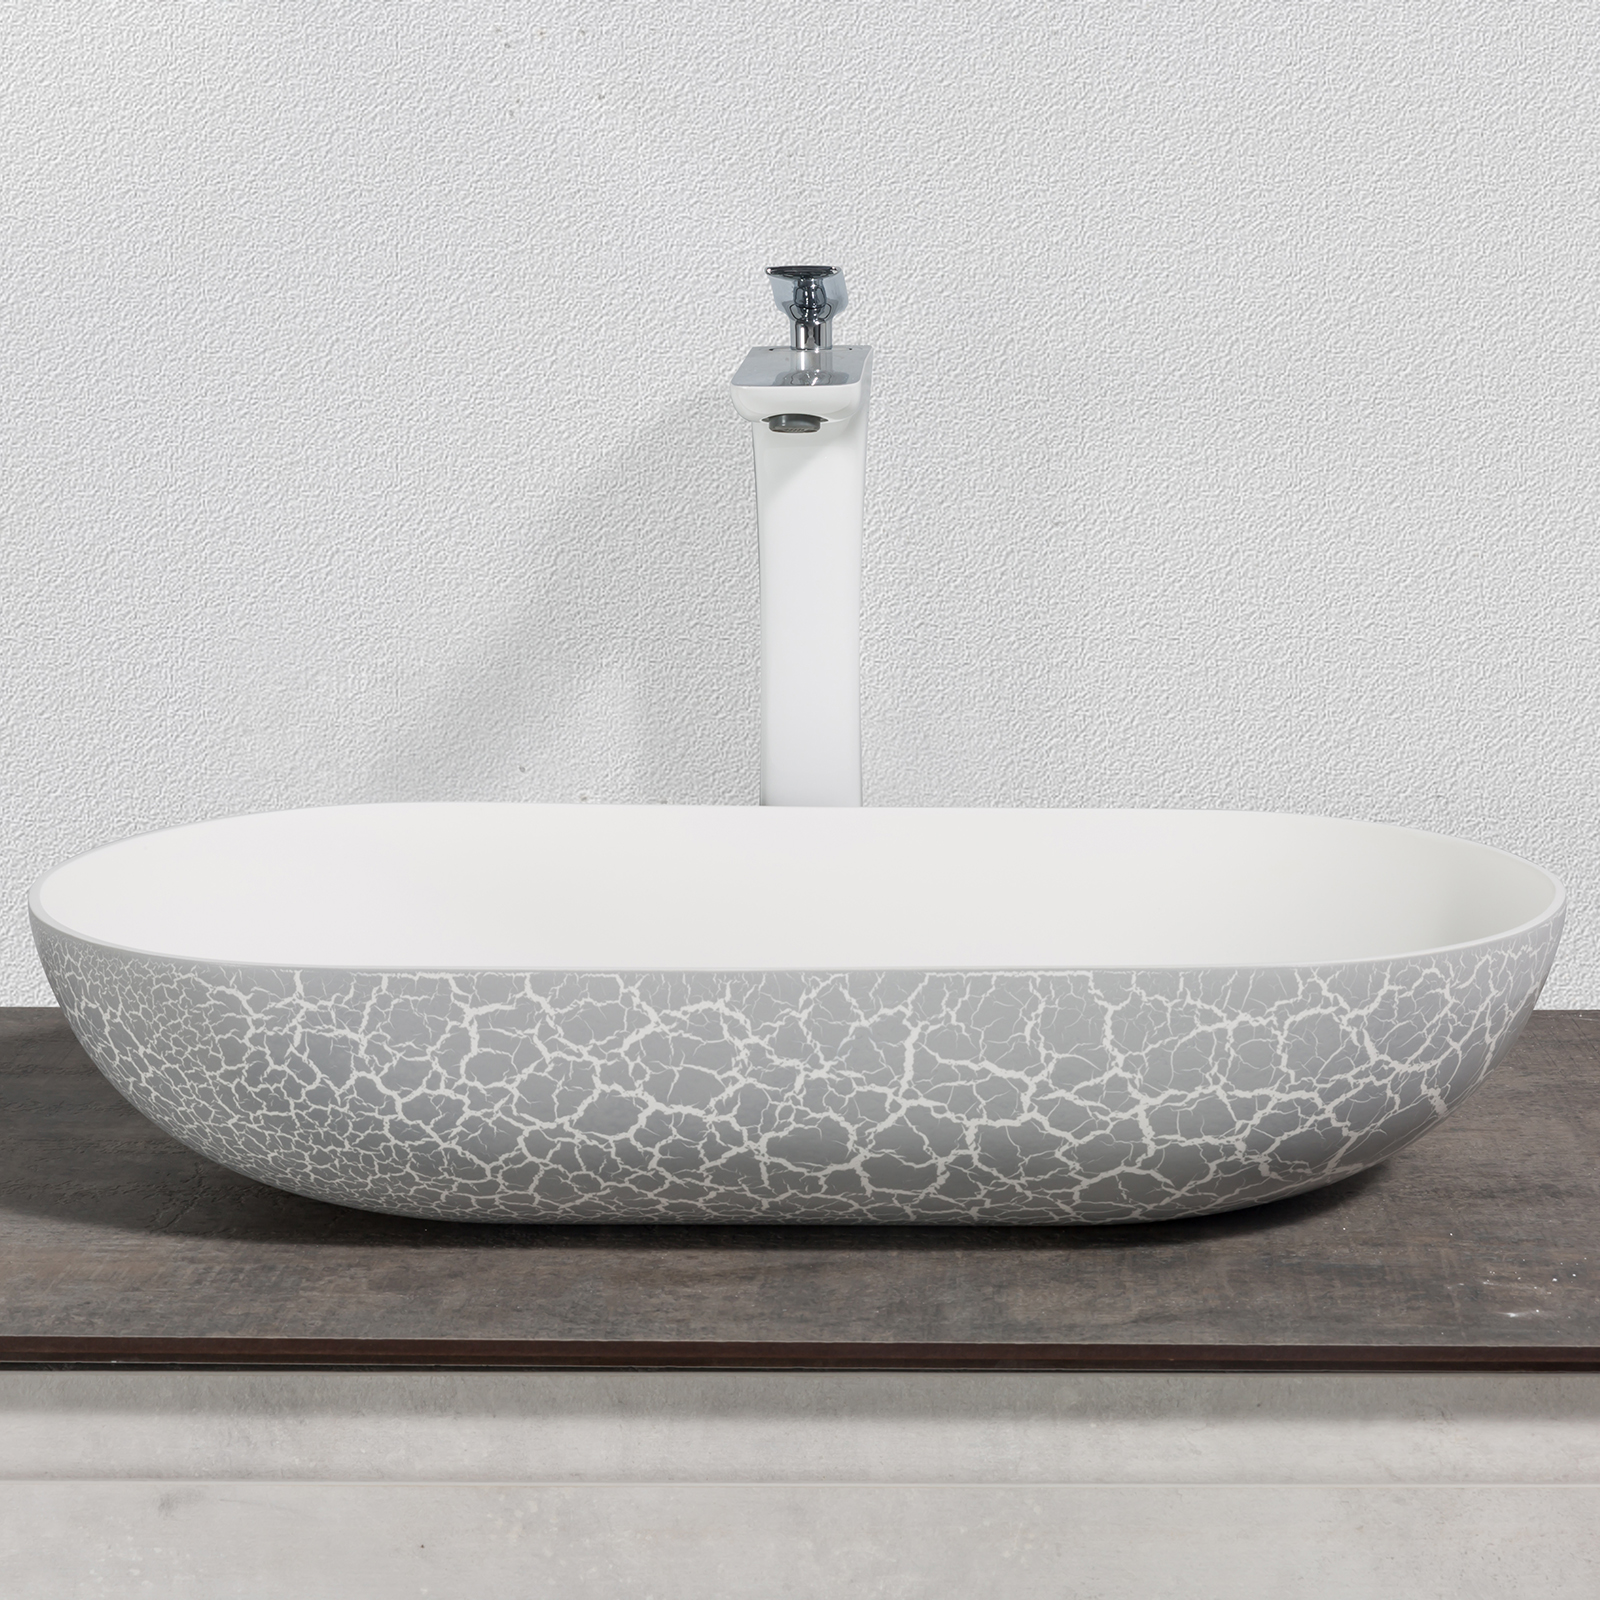 Countertop basin O-540 OCEAN of mineral cast -  rubble matt grey - 54 x 34 x 12cm